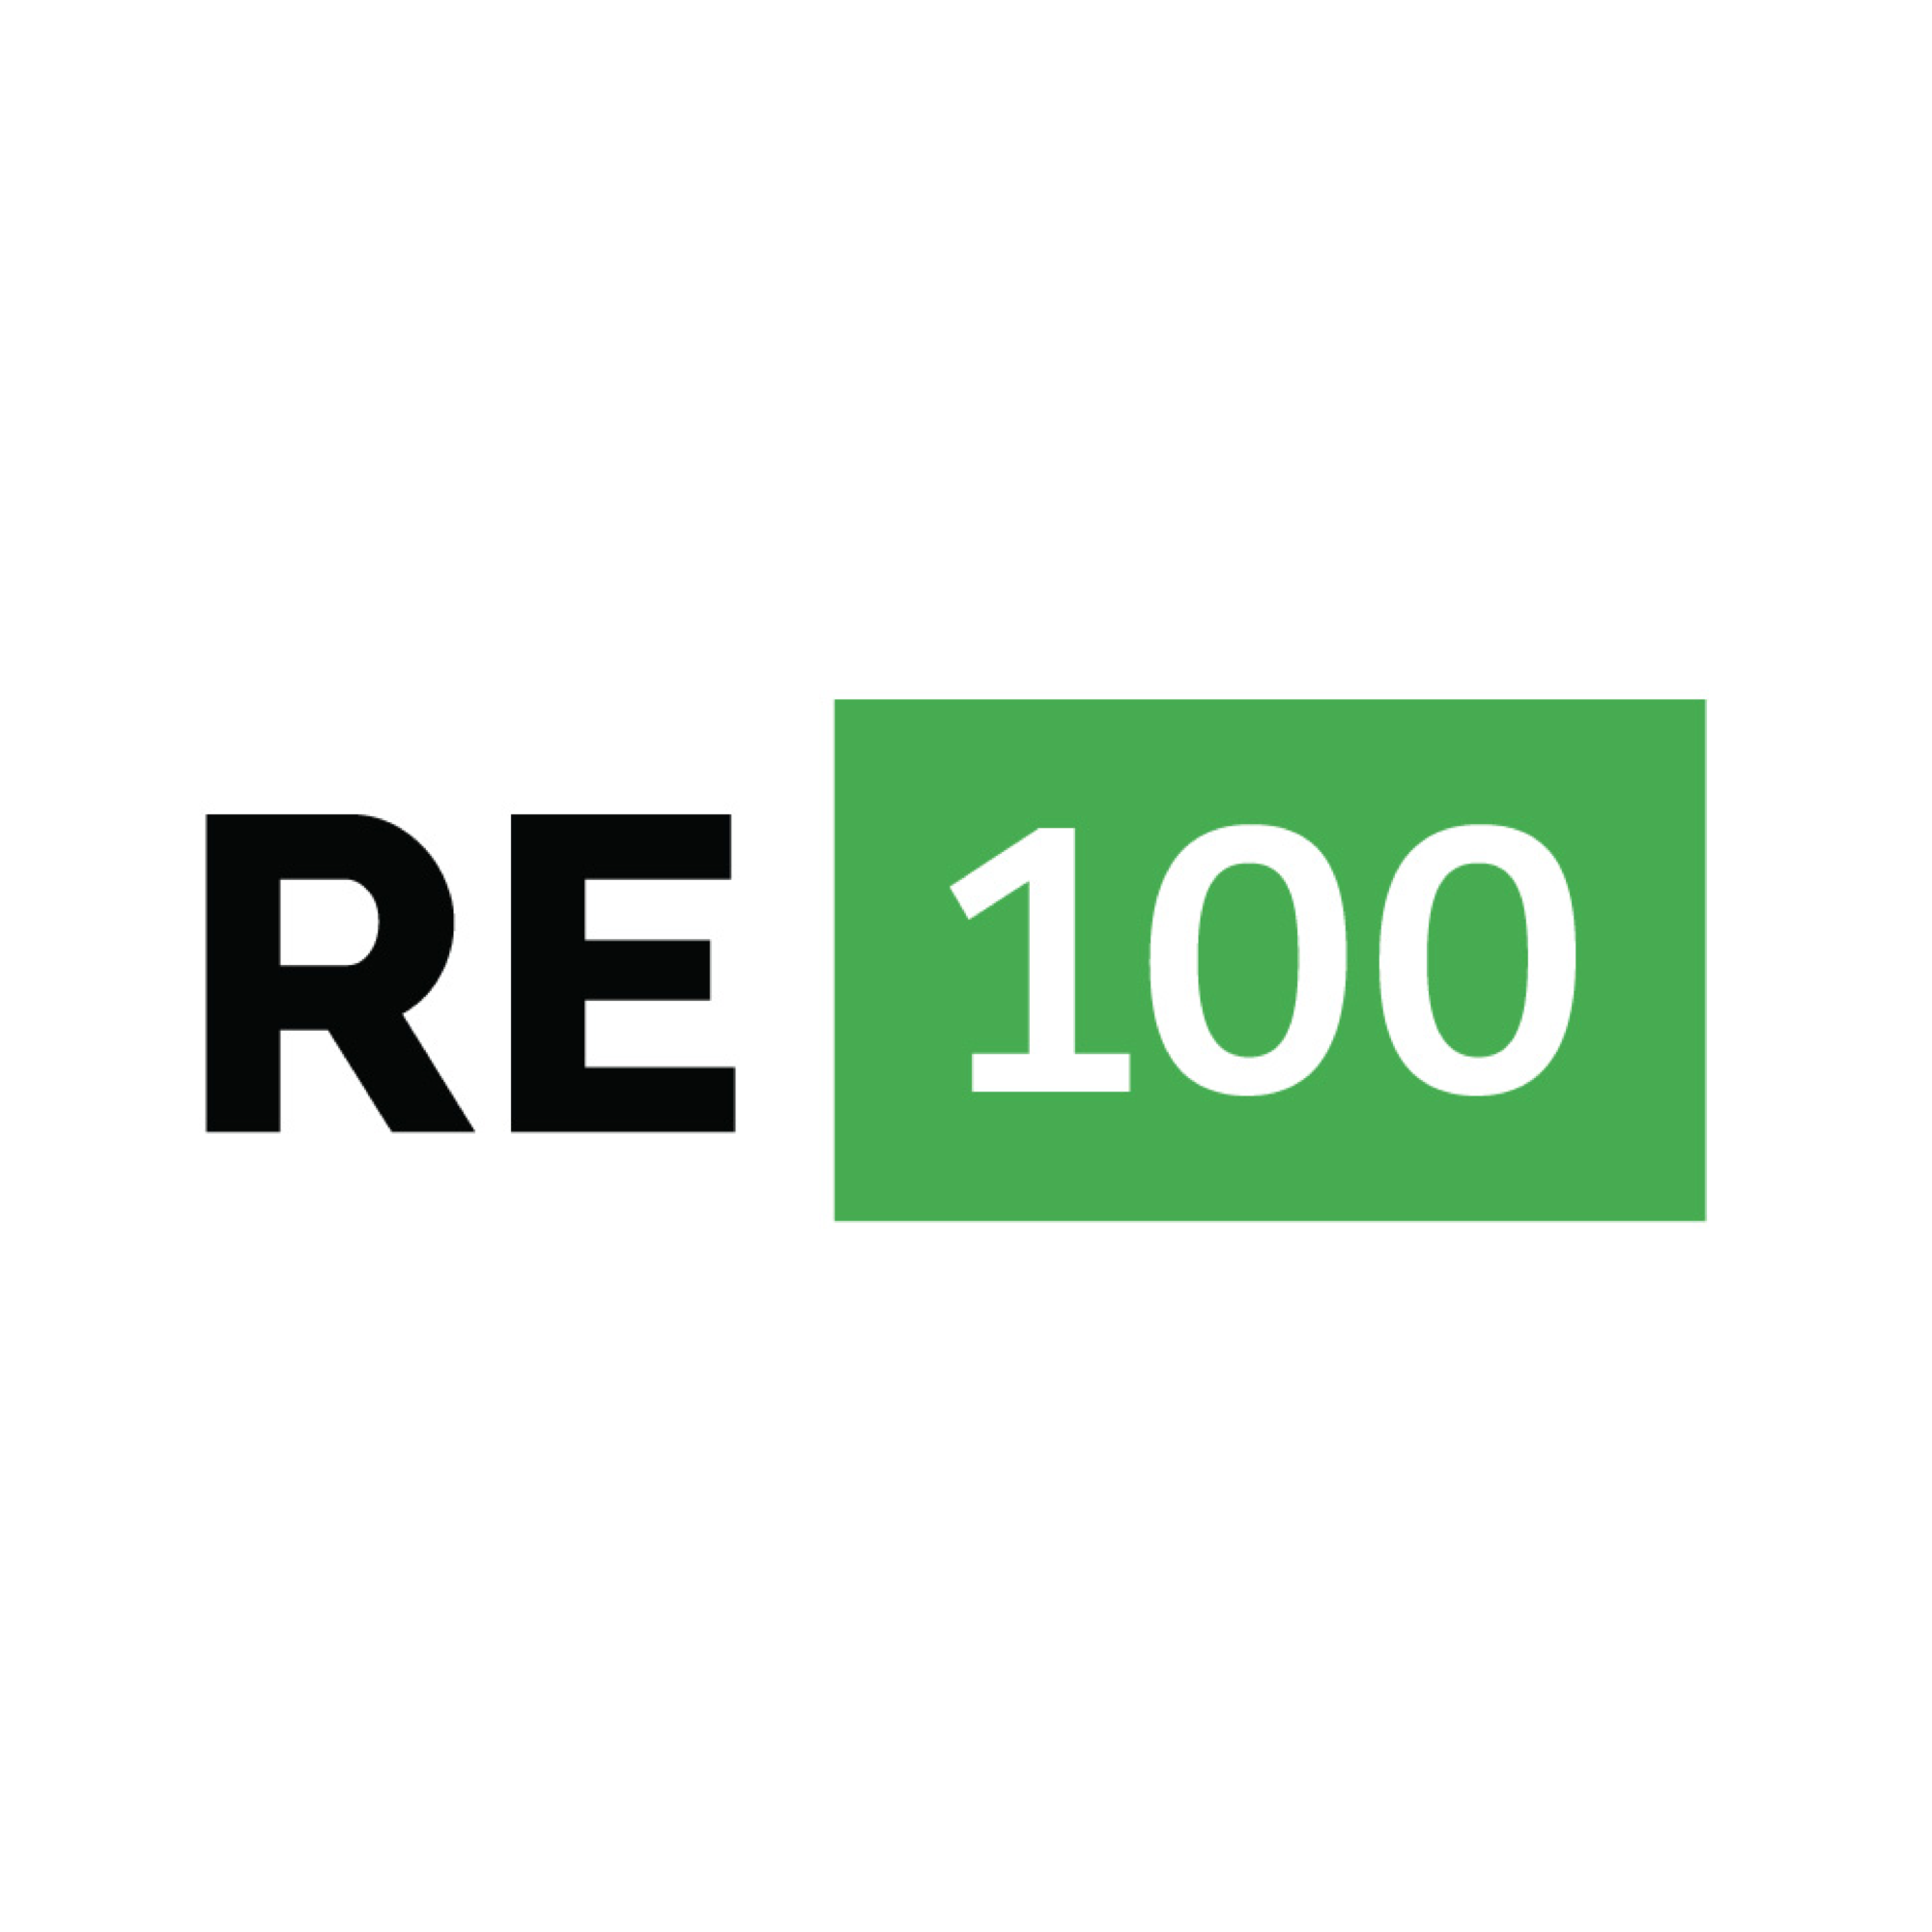 RE100.png